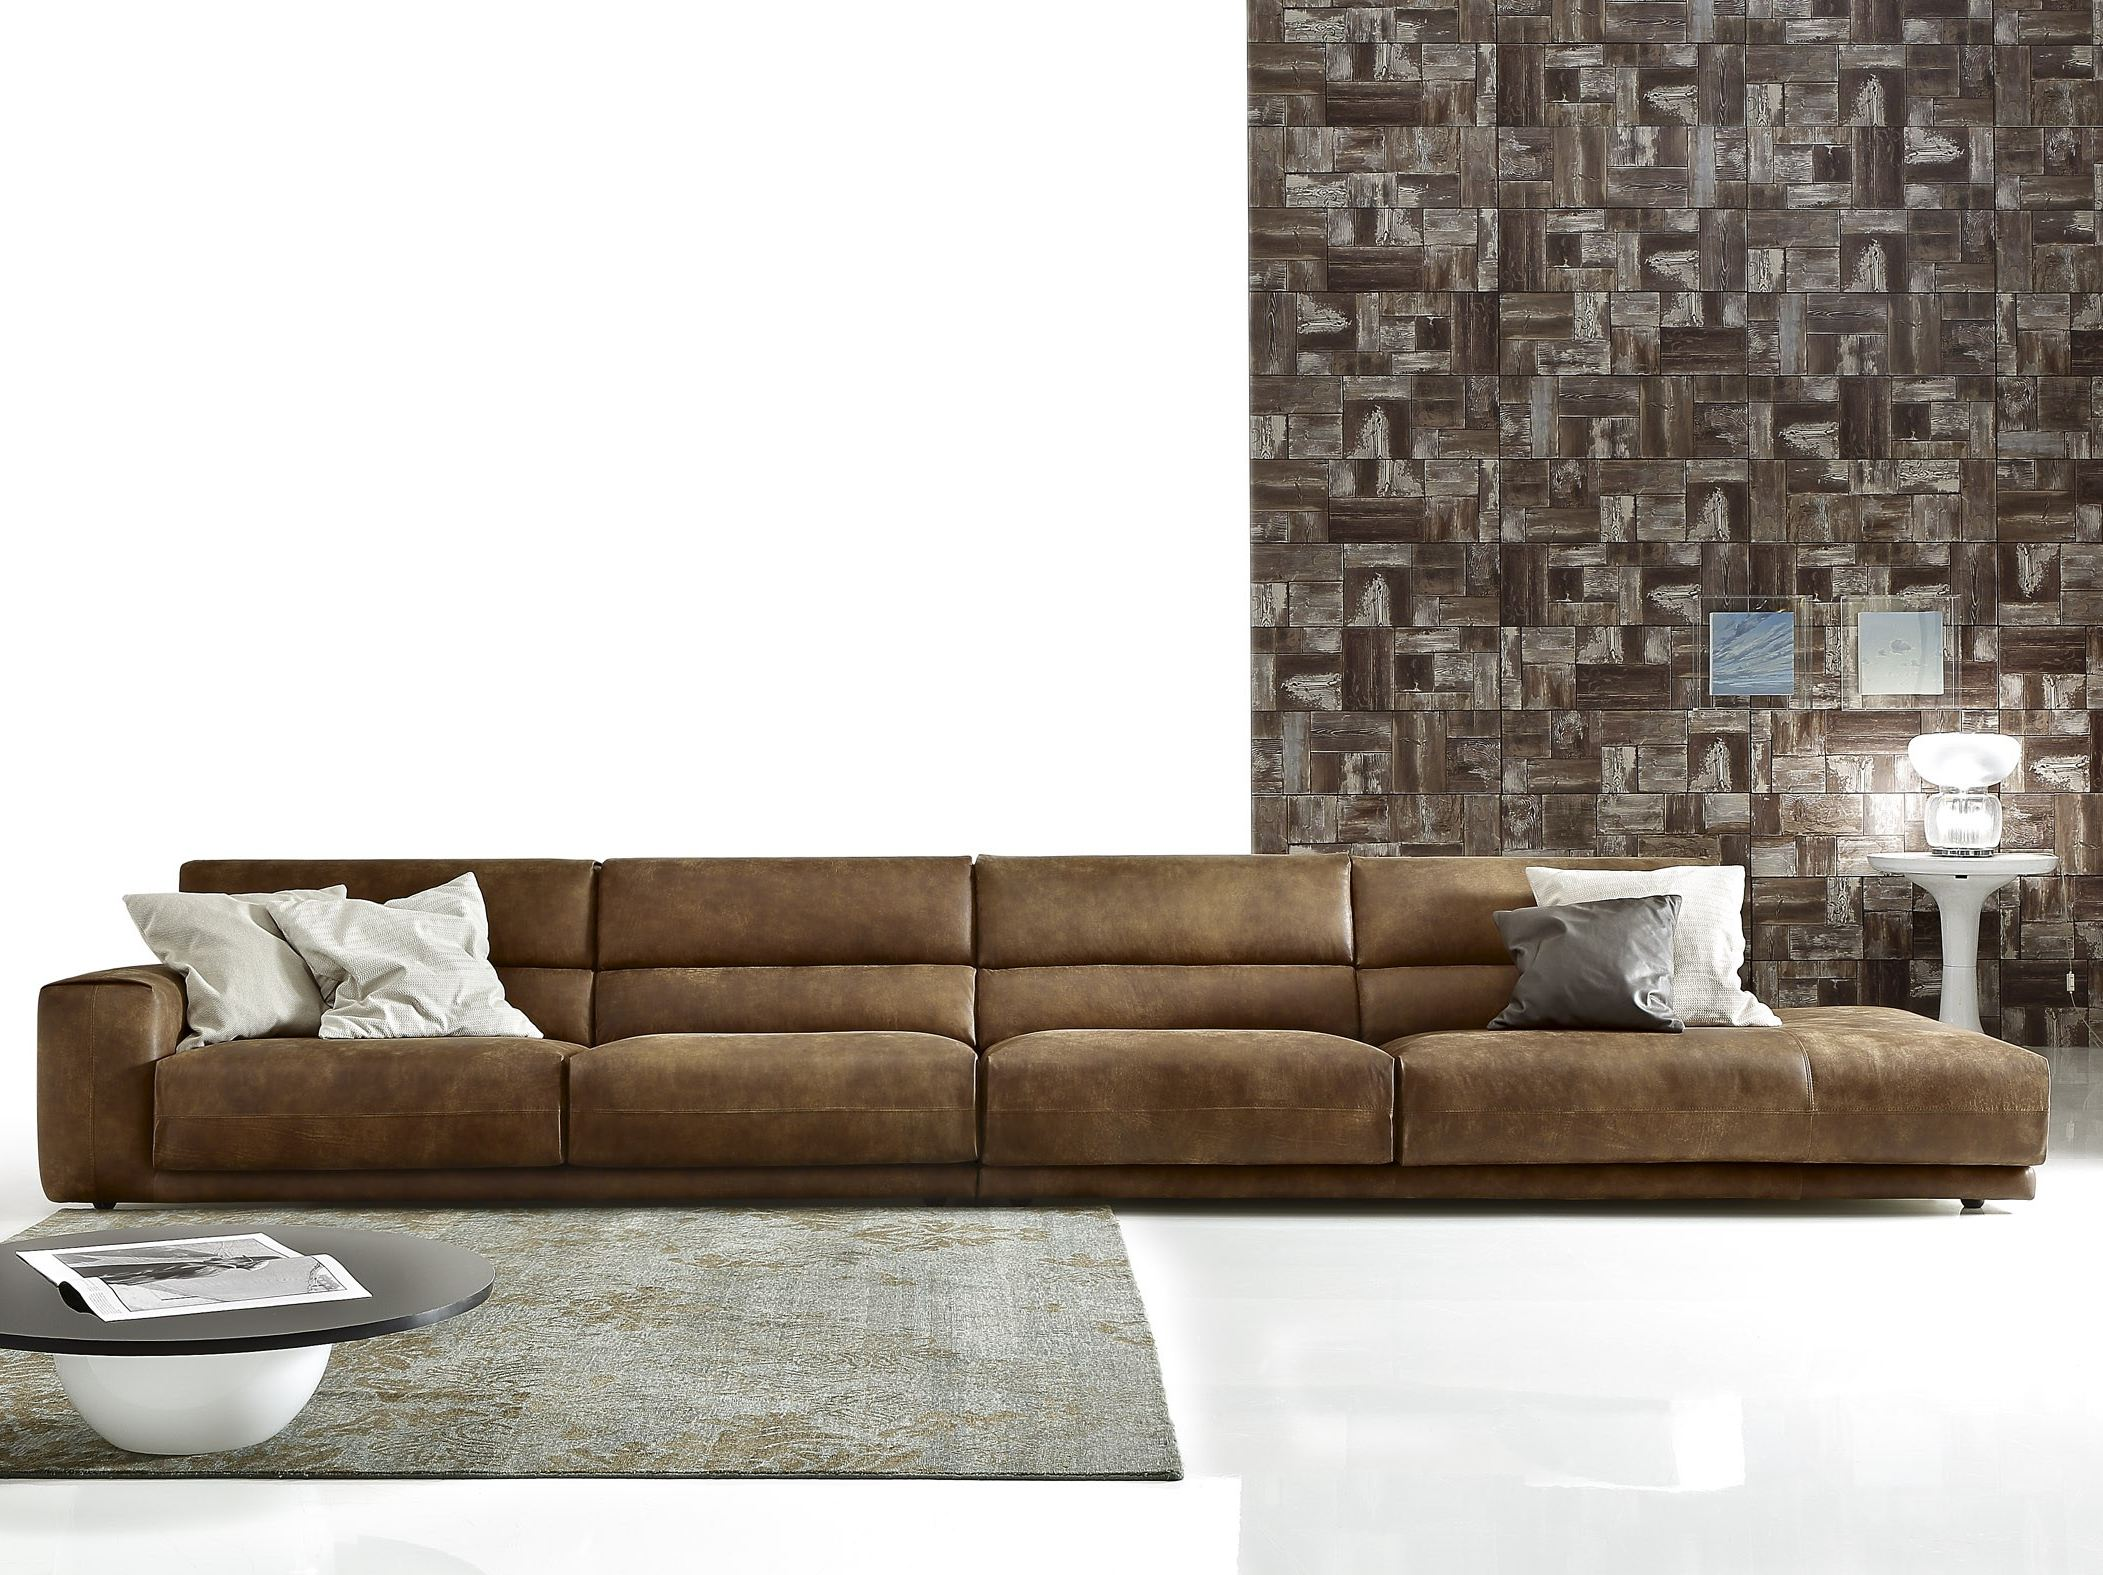 Sectional imitation leather sofa booman leather by ditre - Sofas italianos de piel ...